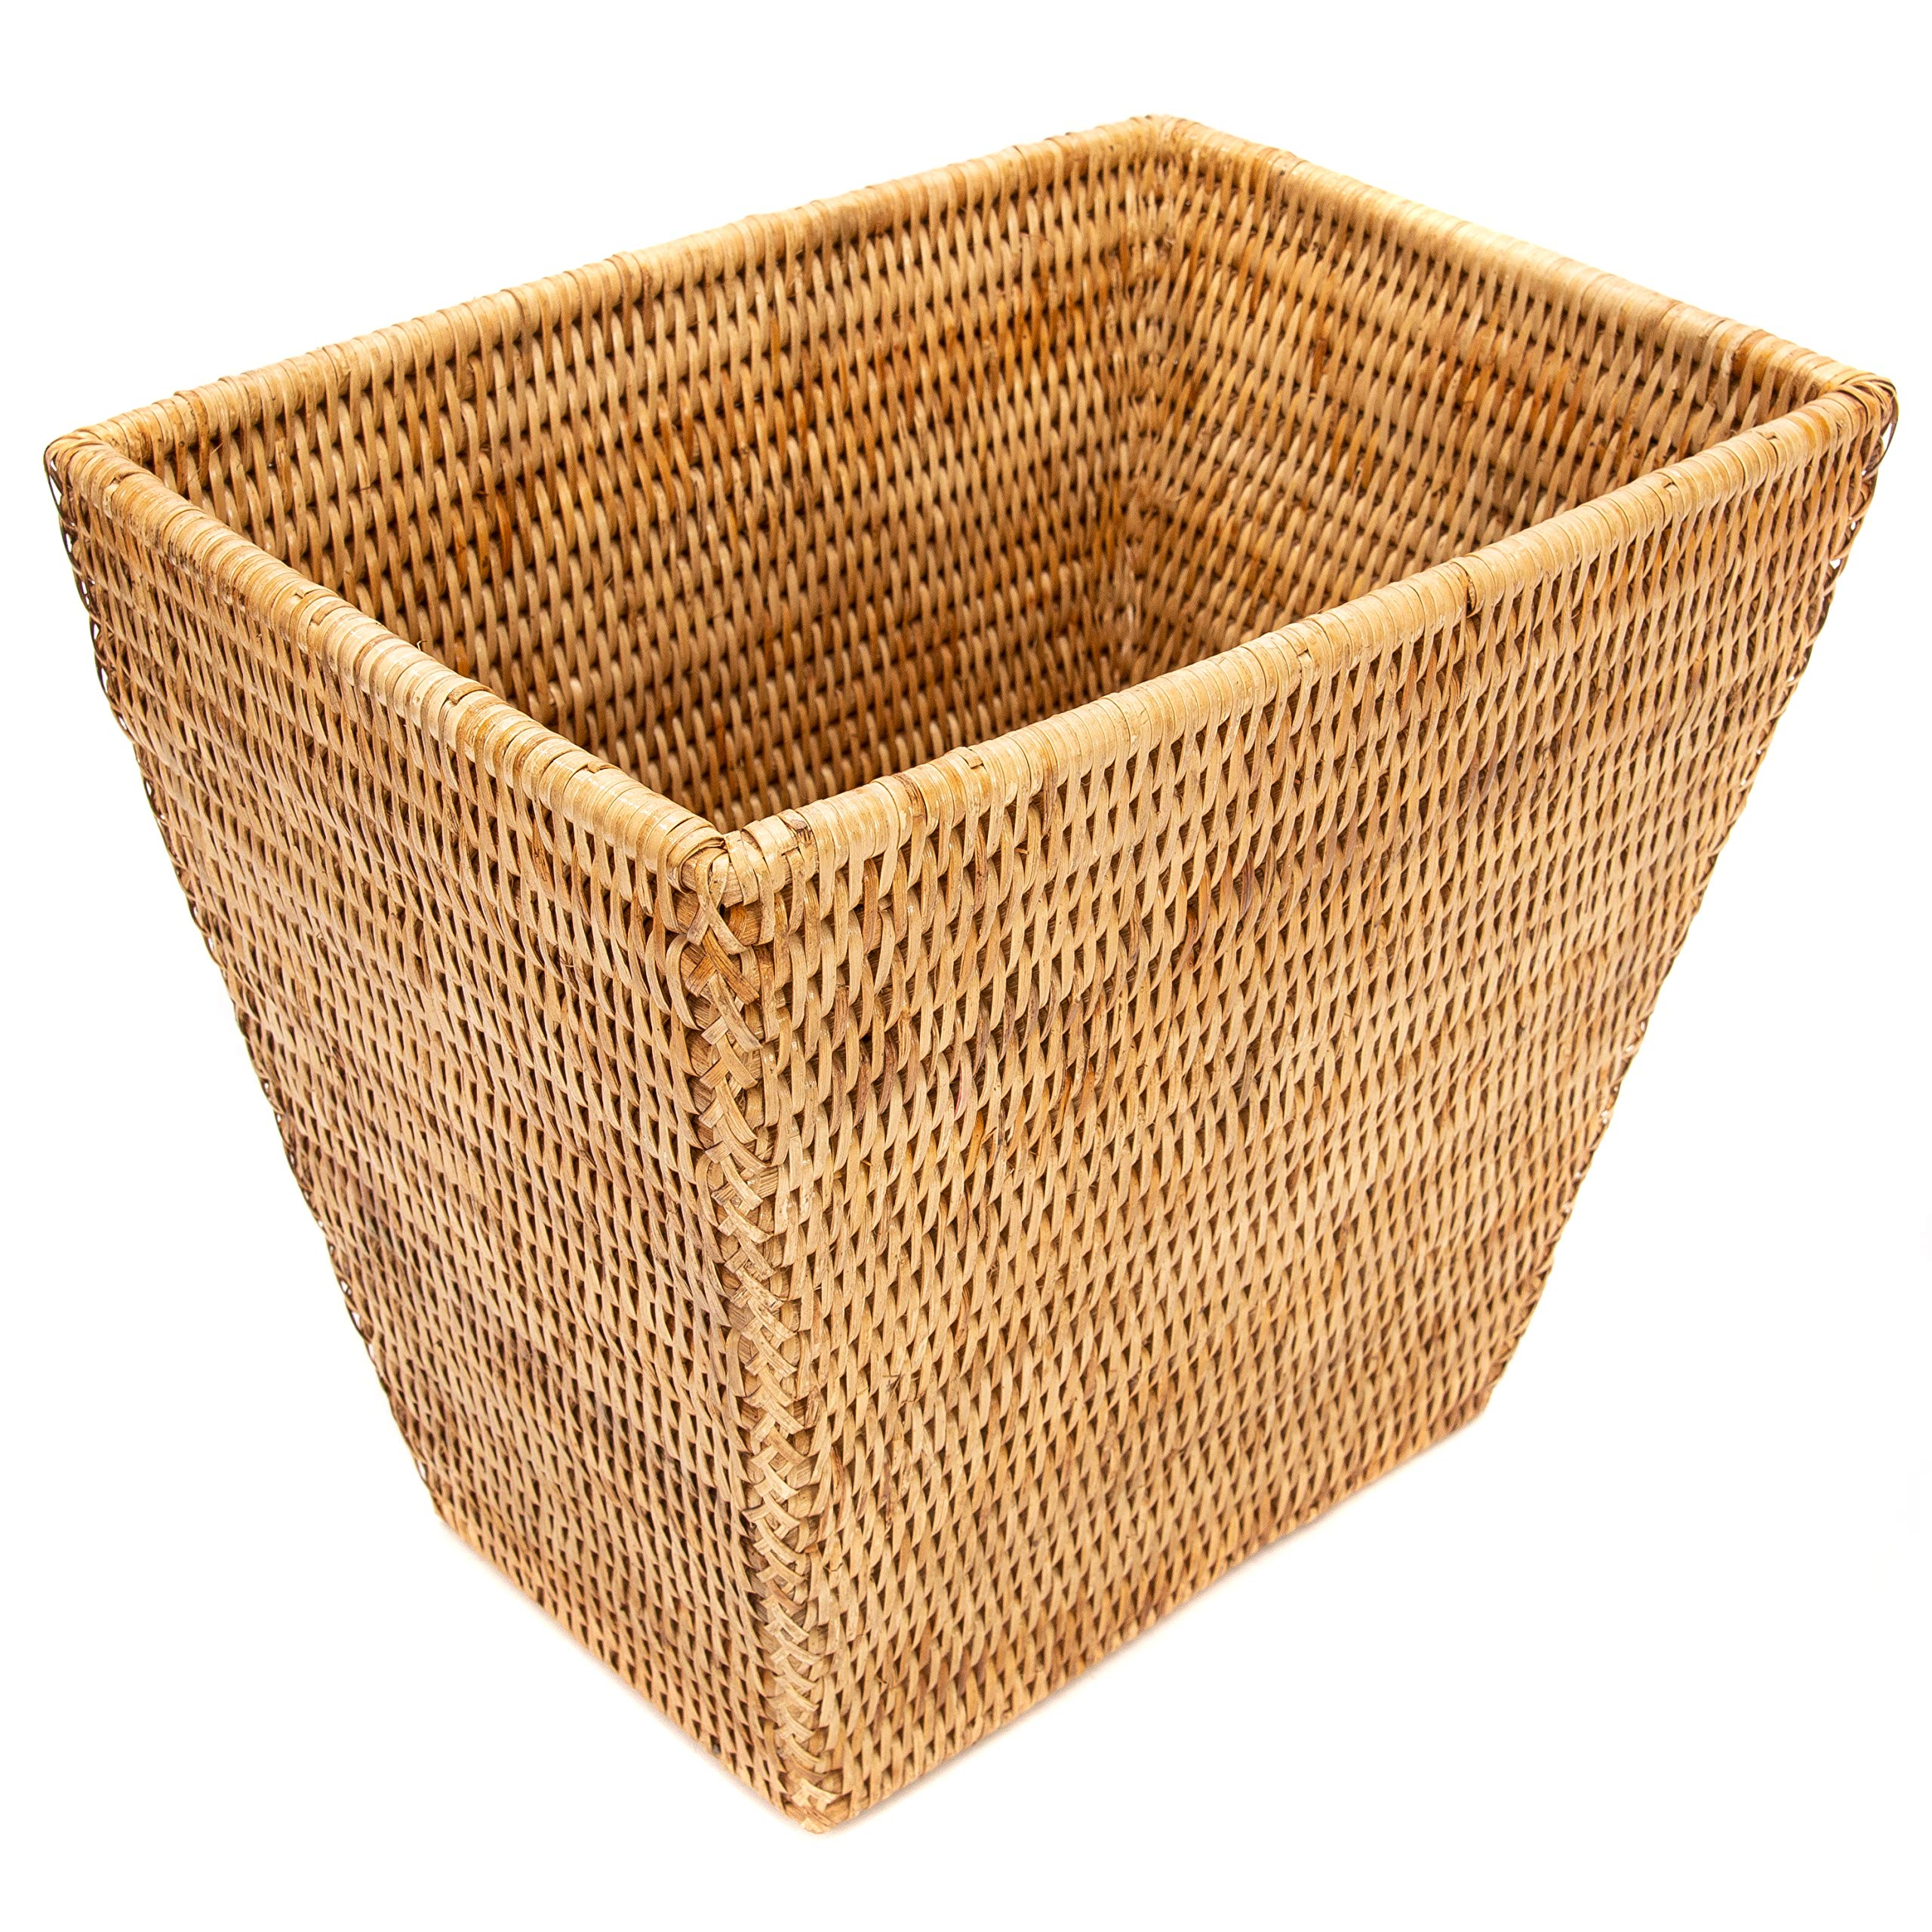 Artifacts Trading Company Artifacts Rattan Waste Basket, Honey Brown by Artifacts Trading Company